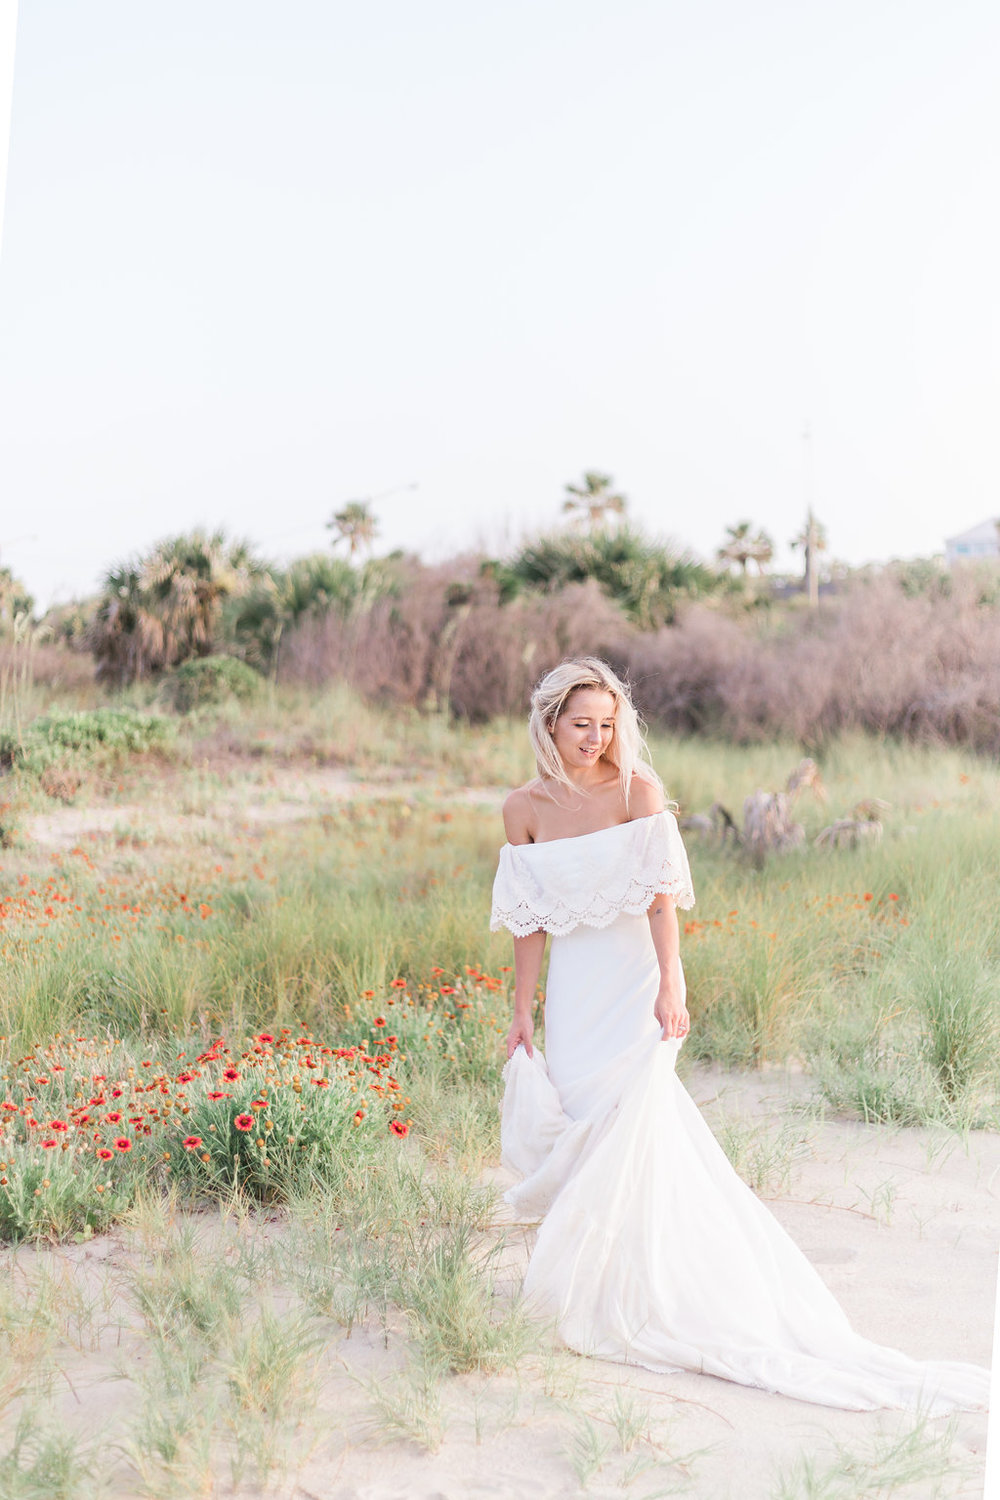 savannah-bridal-shop-last-minute-wedding-planning-details-you-should-start-on-NOW-bluebell-photography-daughters-of-simone-tybee-island-wedding-16.jpg